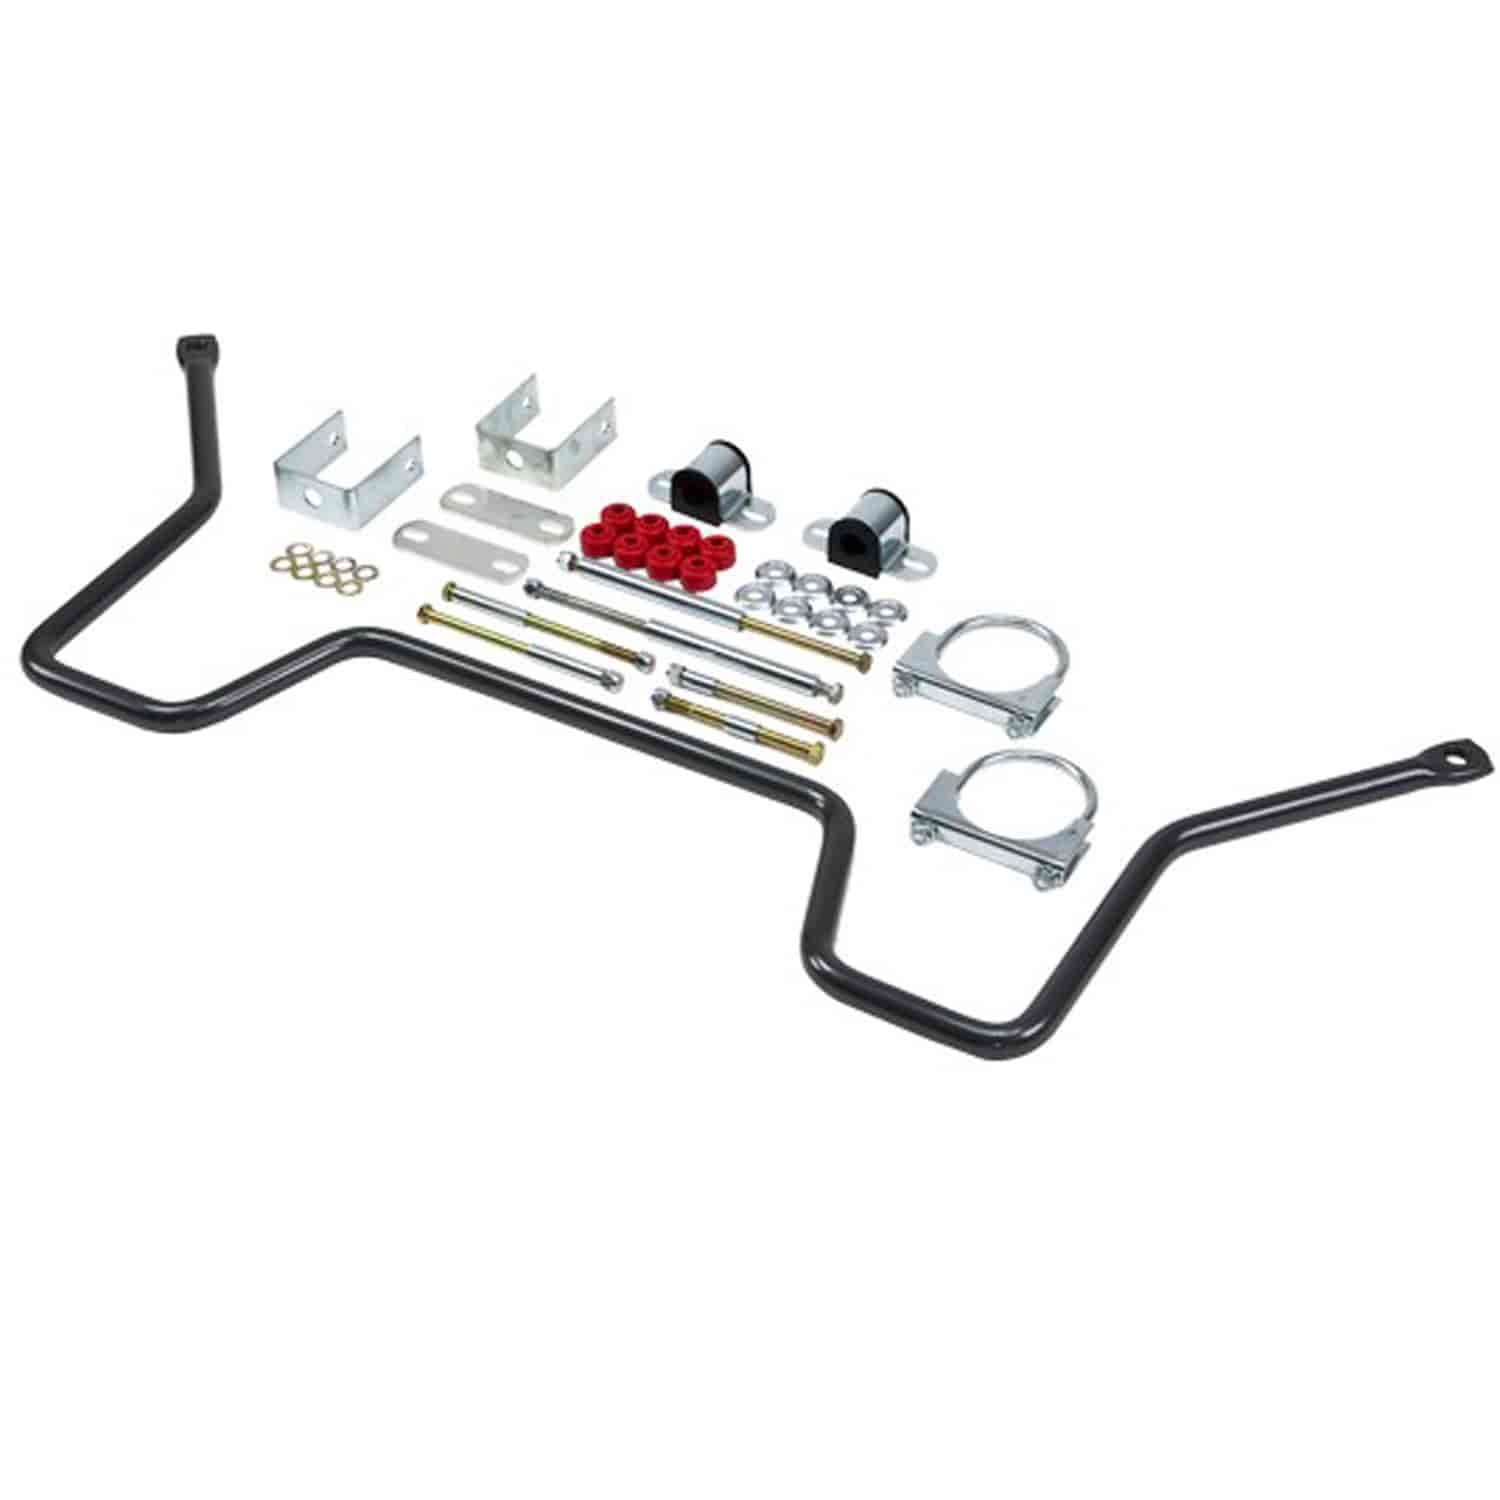 Belltech 5528 Rear Sway Bar Kit For 1985 2002 Chevy Astro